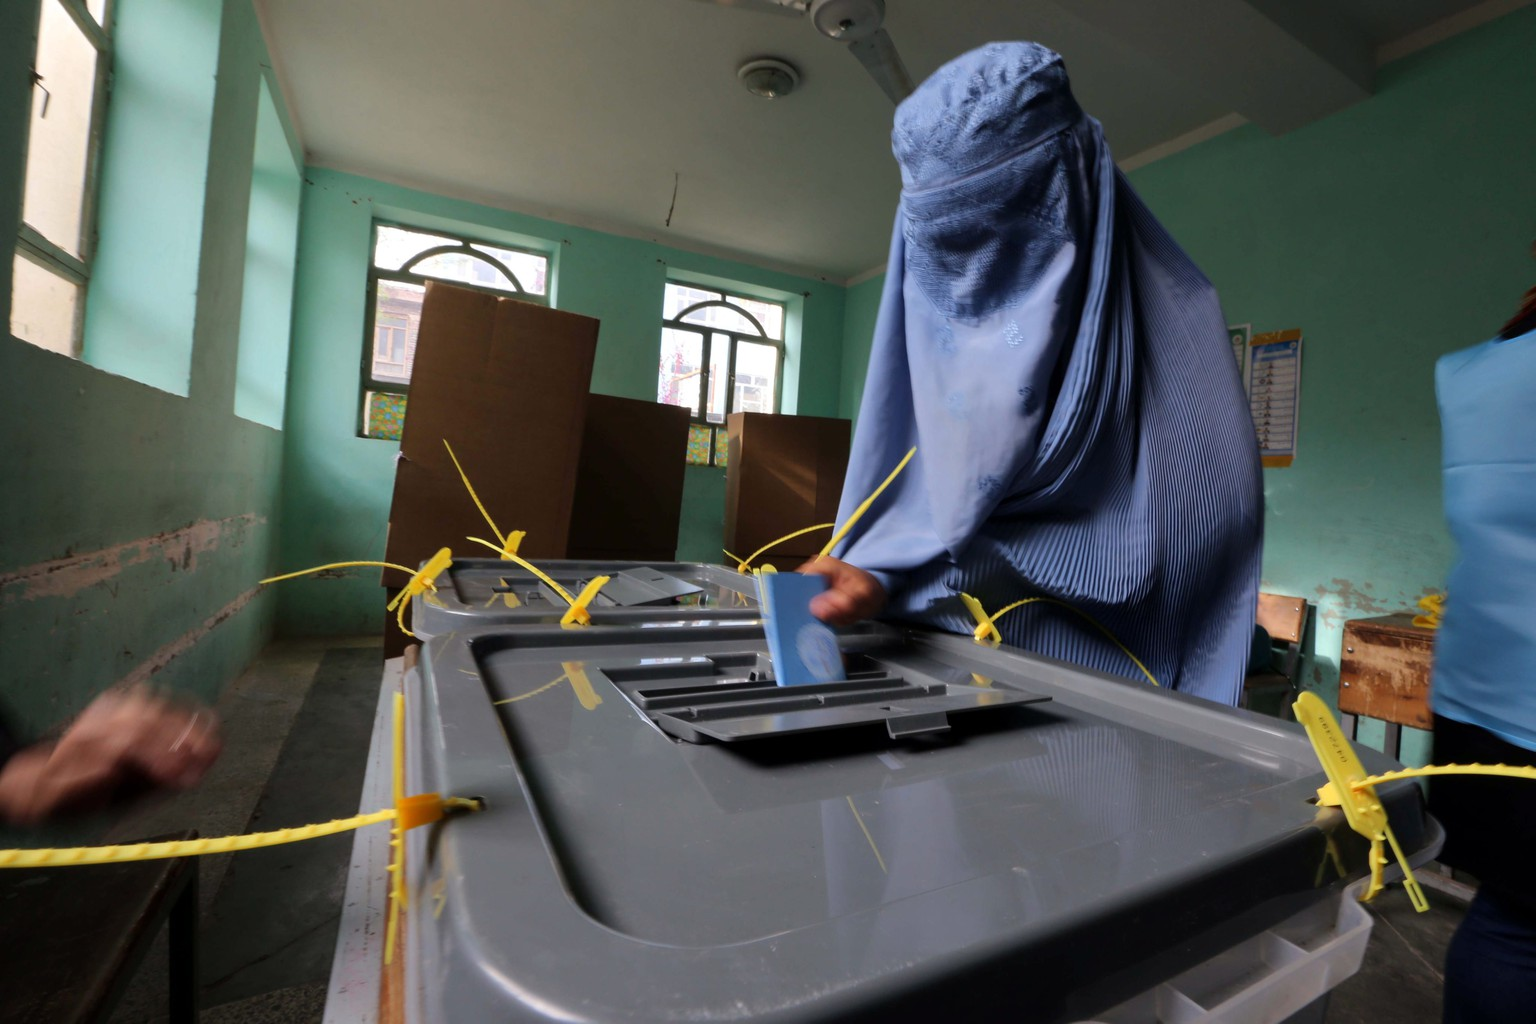 epa04154985 An Afghan woman casts her ballot at a polling station during the Presidential elections in Herat, Afghanistan, 05 April 2014. Afghanistan began voting 05 April, for a new president amid fears of violence and insecurity. About 12 million voters are eligible to cast ballots at some 6,400 polling centers across the country, according to IEC. Around 400,000 security forces have been deployed.  EPA/JALIL REZAYEE